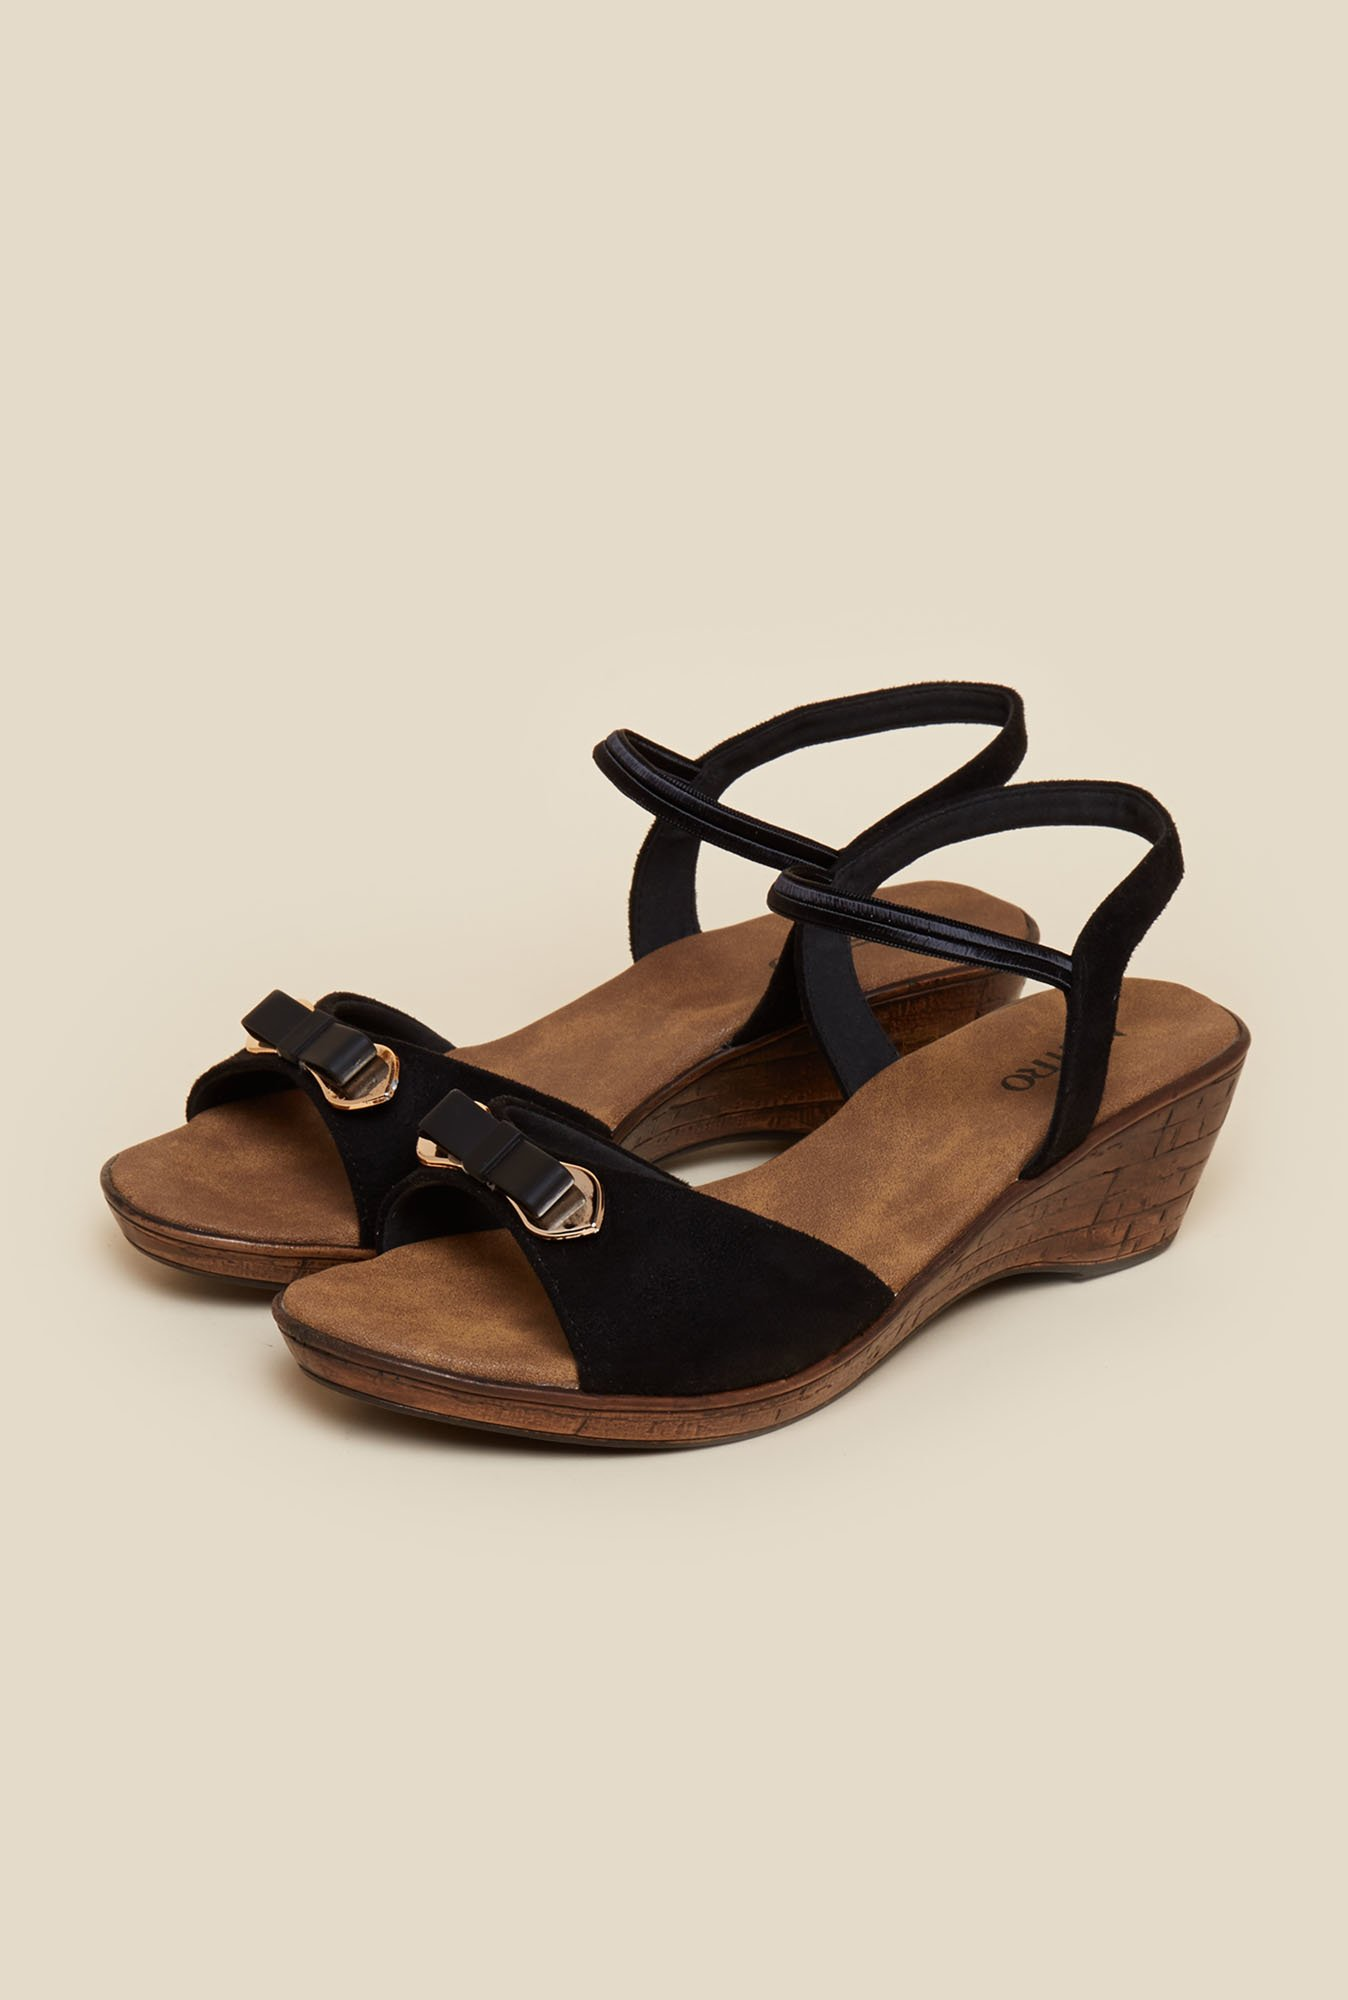 Metro Black Open Toe Wedges